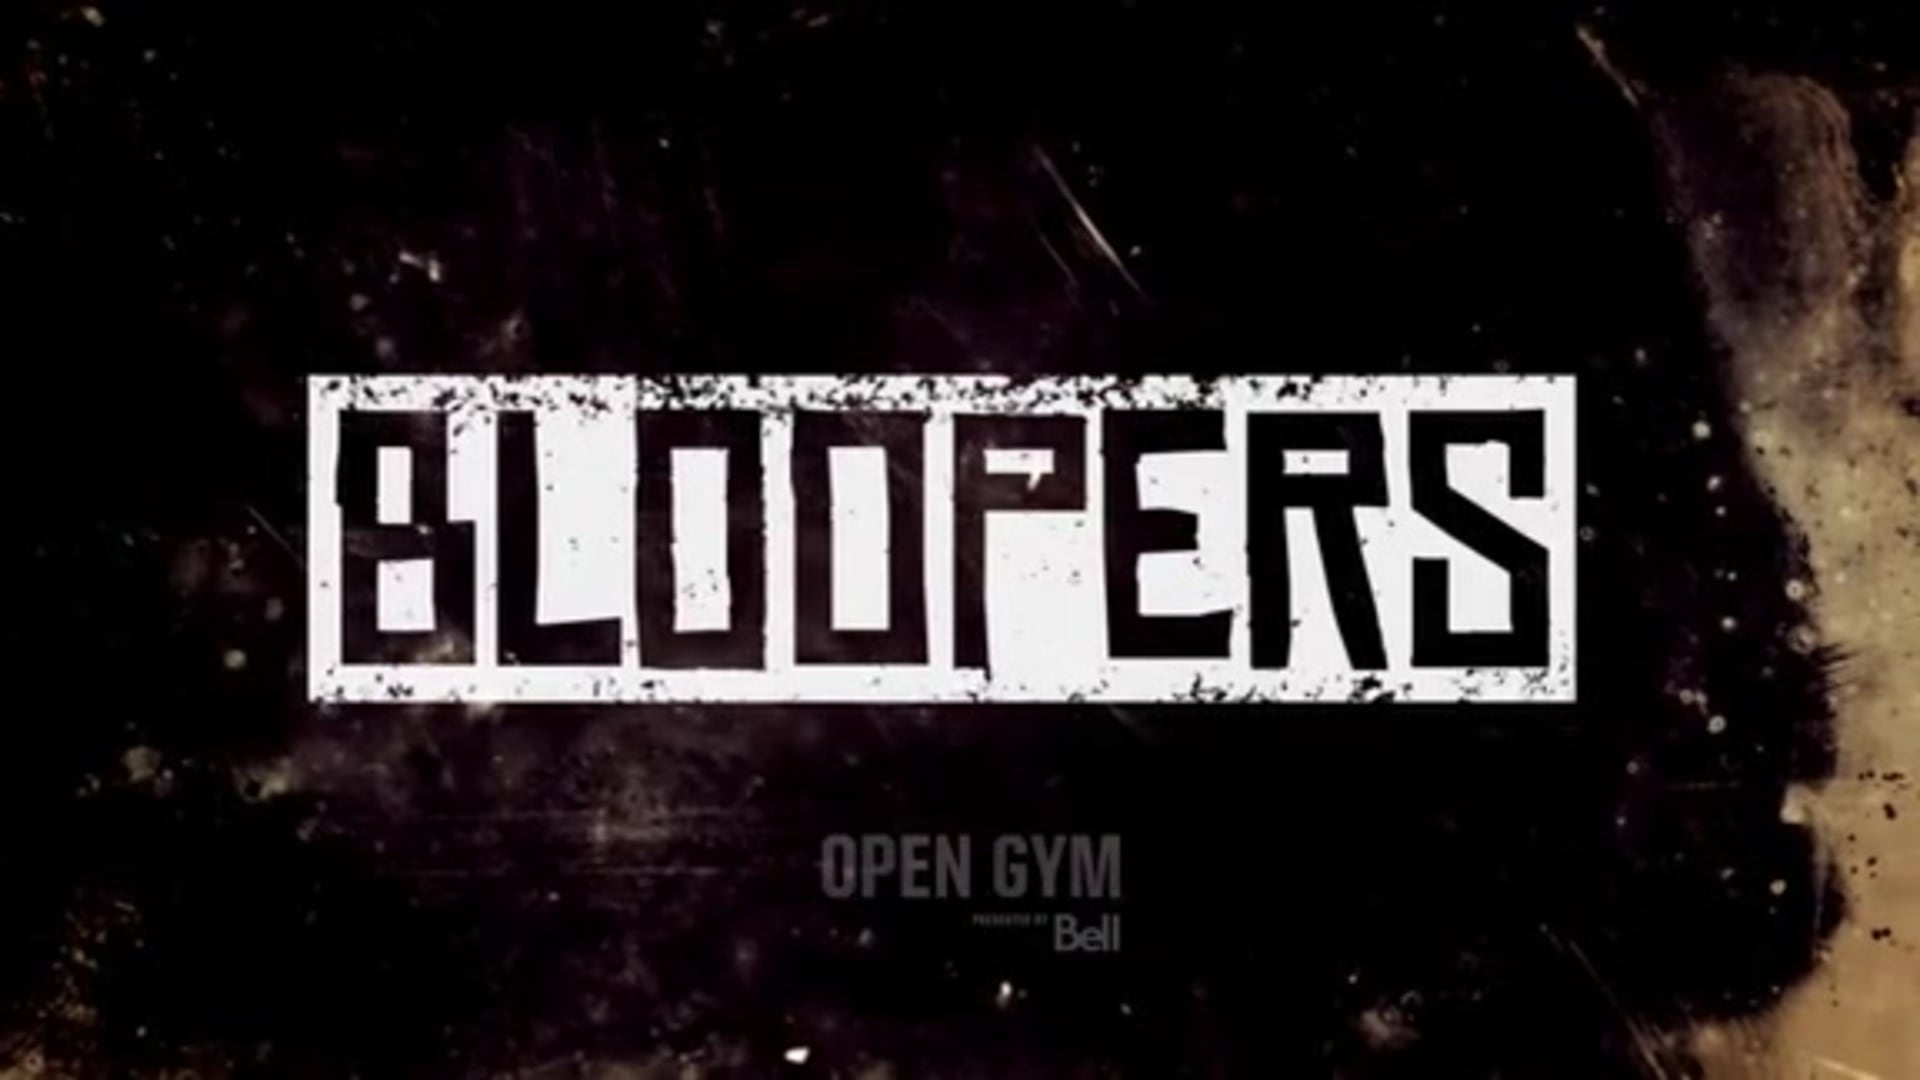 Open Gym: Bloopers Week 3 presented by Bell